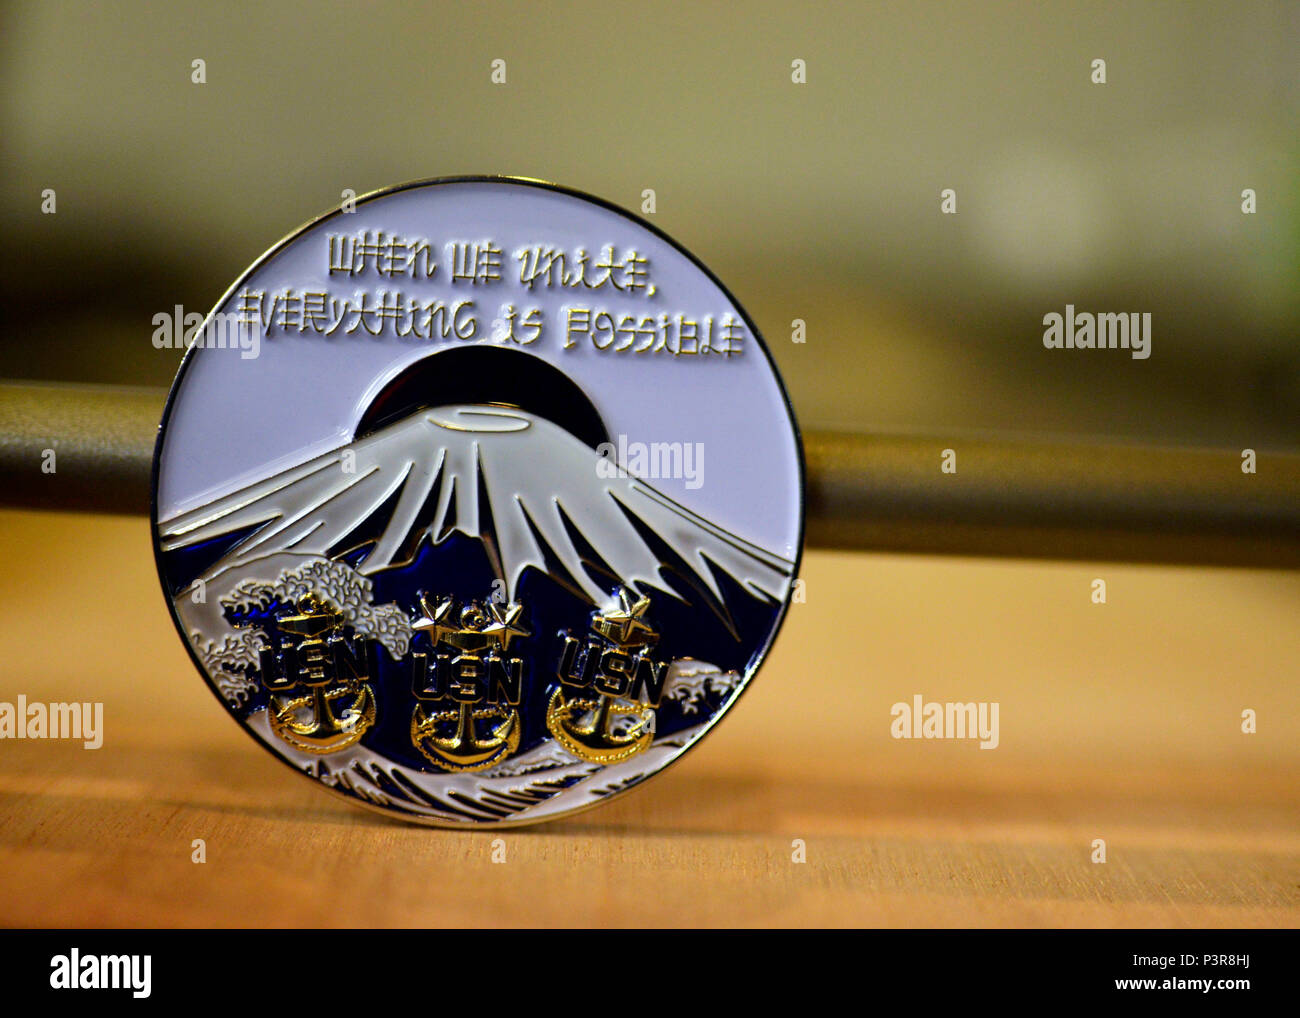 160726-N-OK605-145 KESENNUMA, Japan (July 27, 2016) One of the 100 specially made Navy challenge coins that Chief Master-at-Arms Brandon Johnson, attached to Afloat Training Group Yokosuka, had made and sold in order to raise a donation to give to the city of Kesennuma. Kesennuma is still rebuilding after it was struck by the 2011 tsunami. (U.S. Navy Photo by Mass Communication Specialist 2nd Class Samuel Weldin/Released) Stock Photo